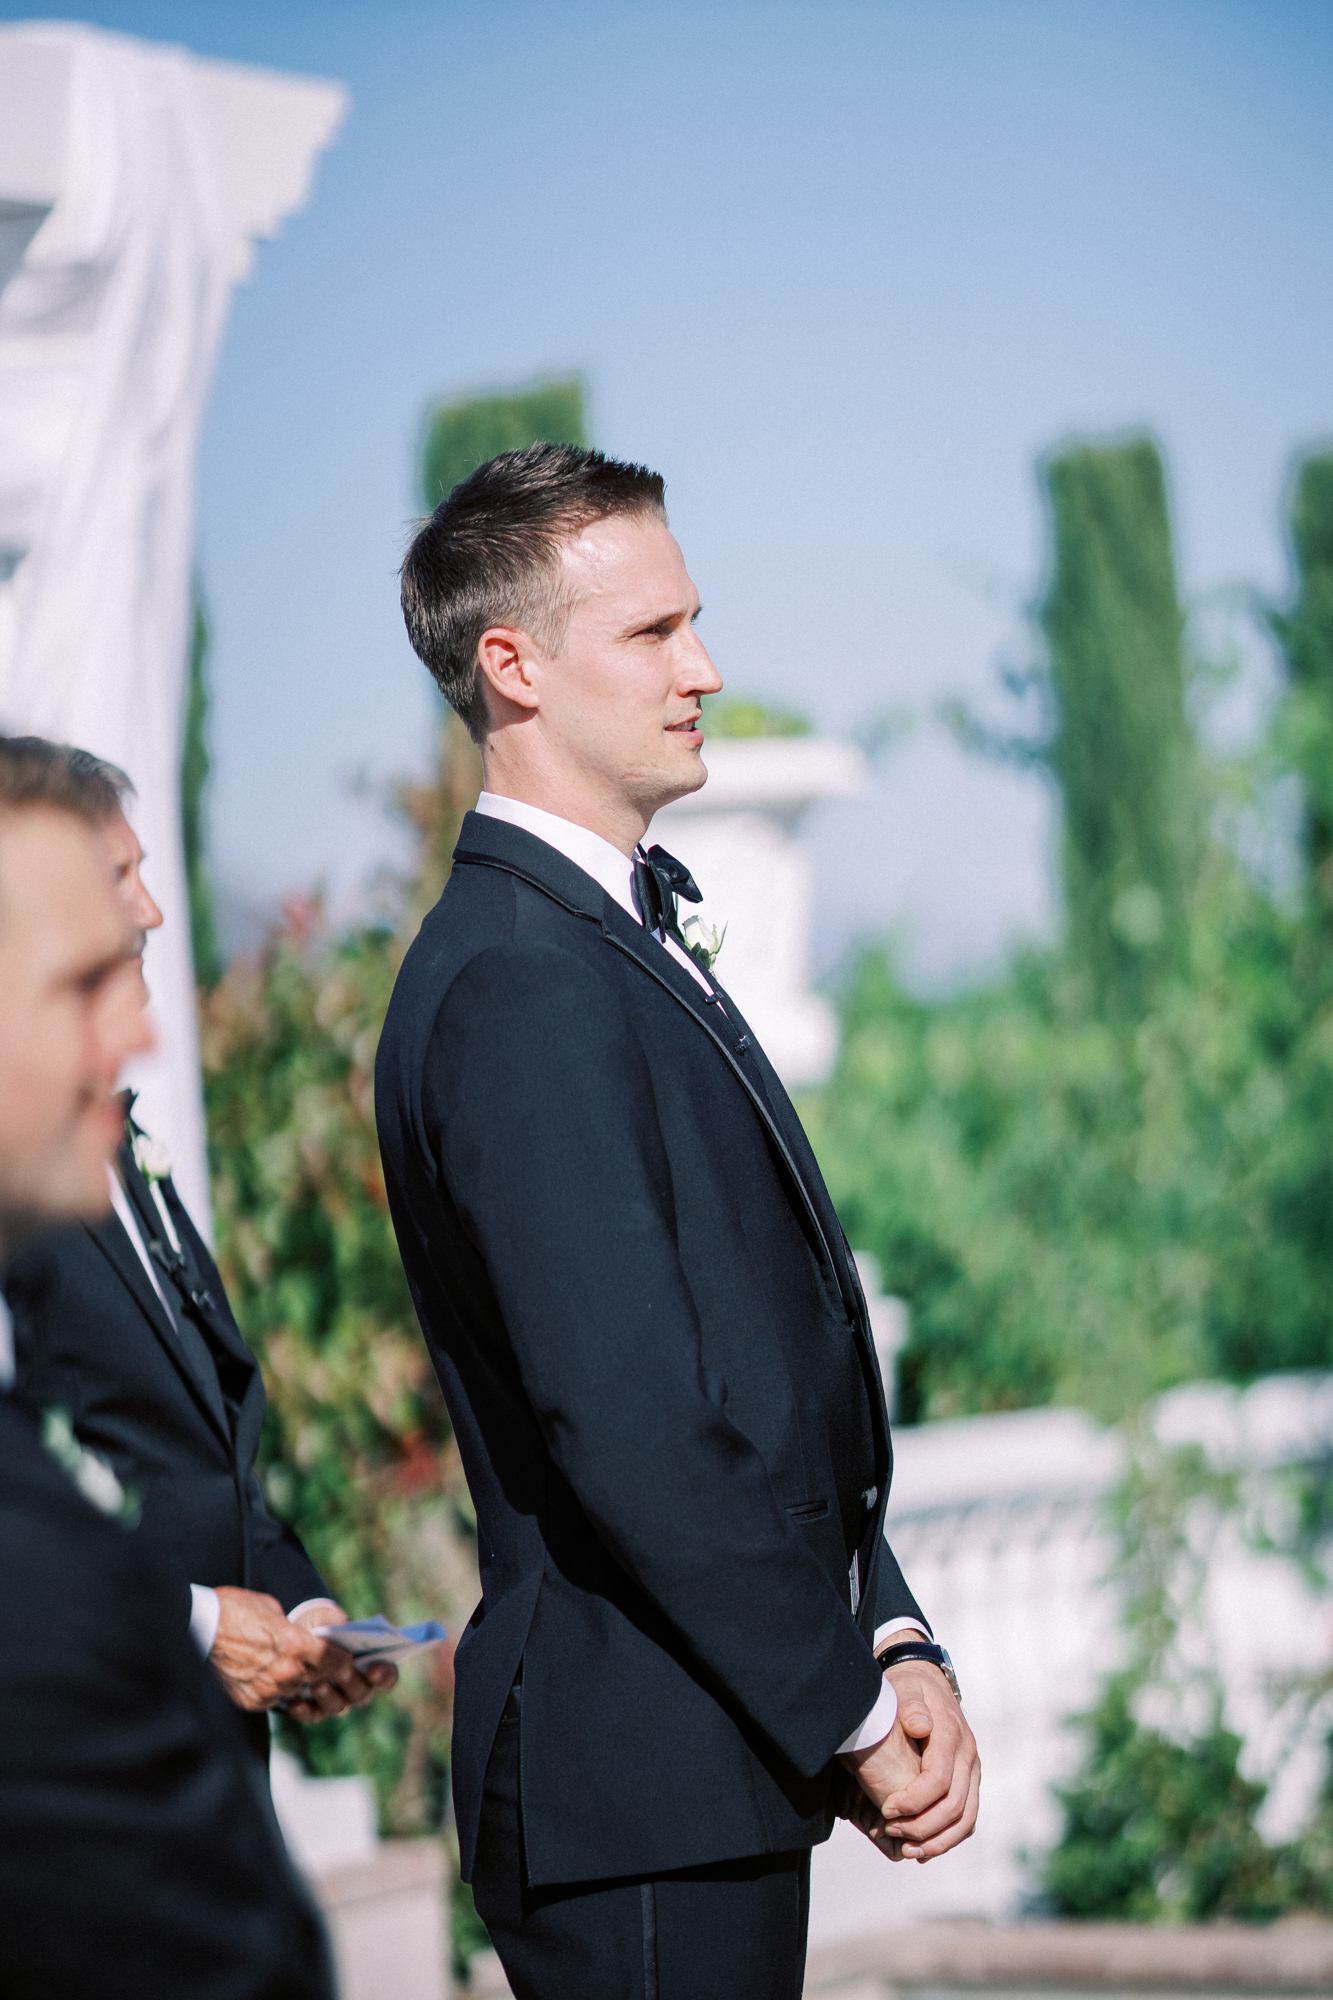 Temecula_Wedding_Photographer-0030.jpg